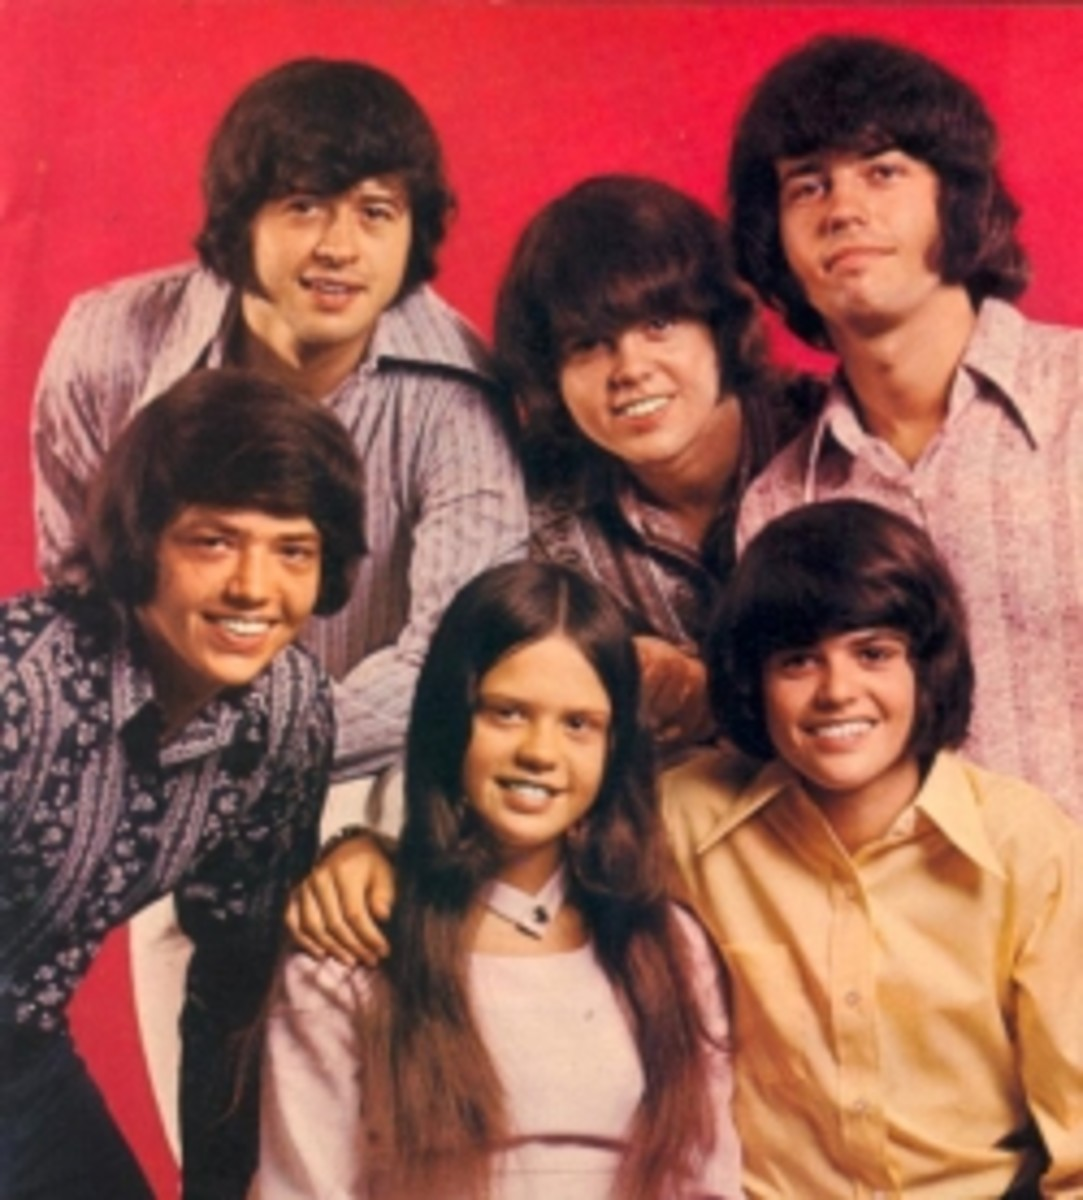 The Osmond Brothers and Marie Osmond.